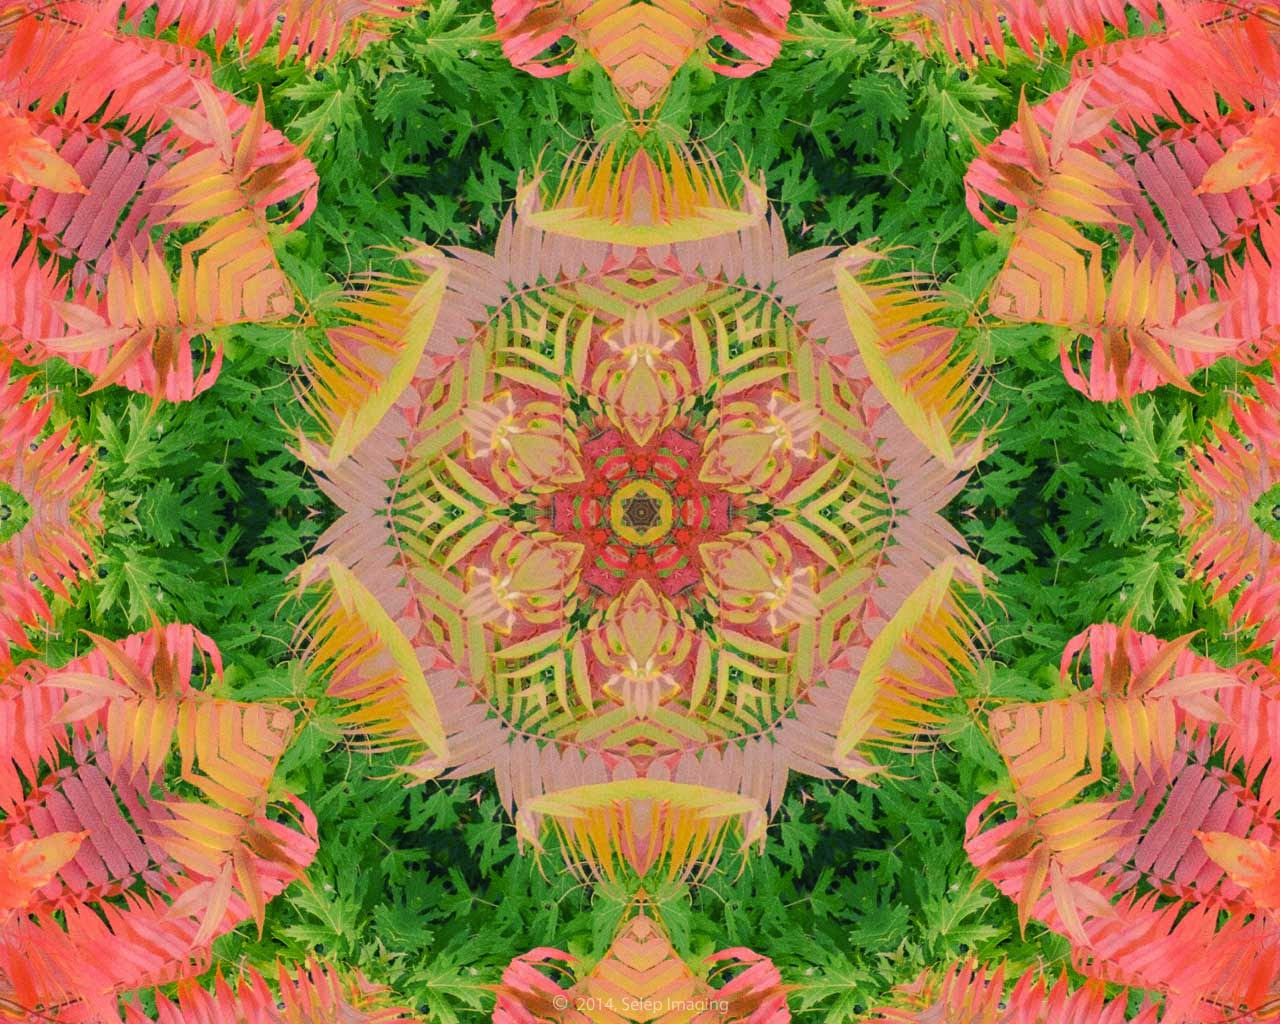 Kaleidoscope Photo Art sumac by Jeanne Selep